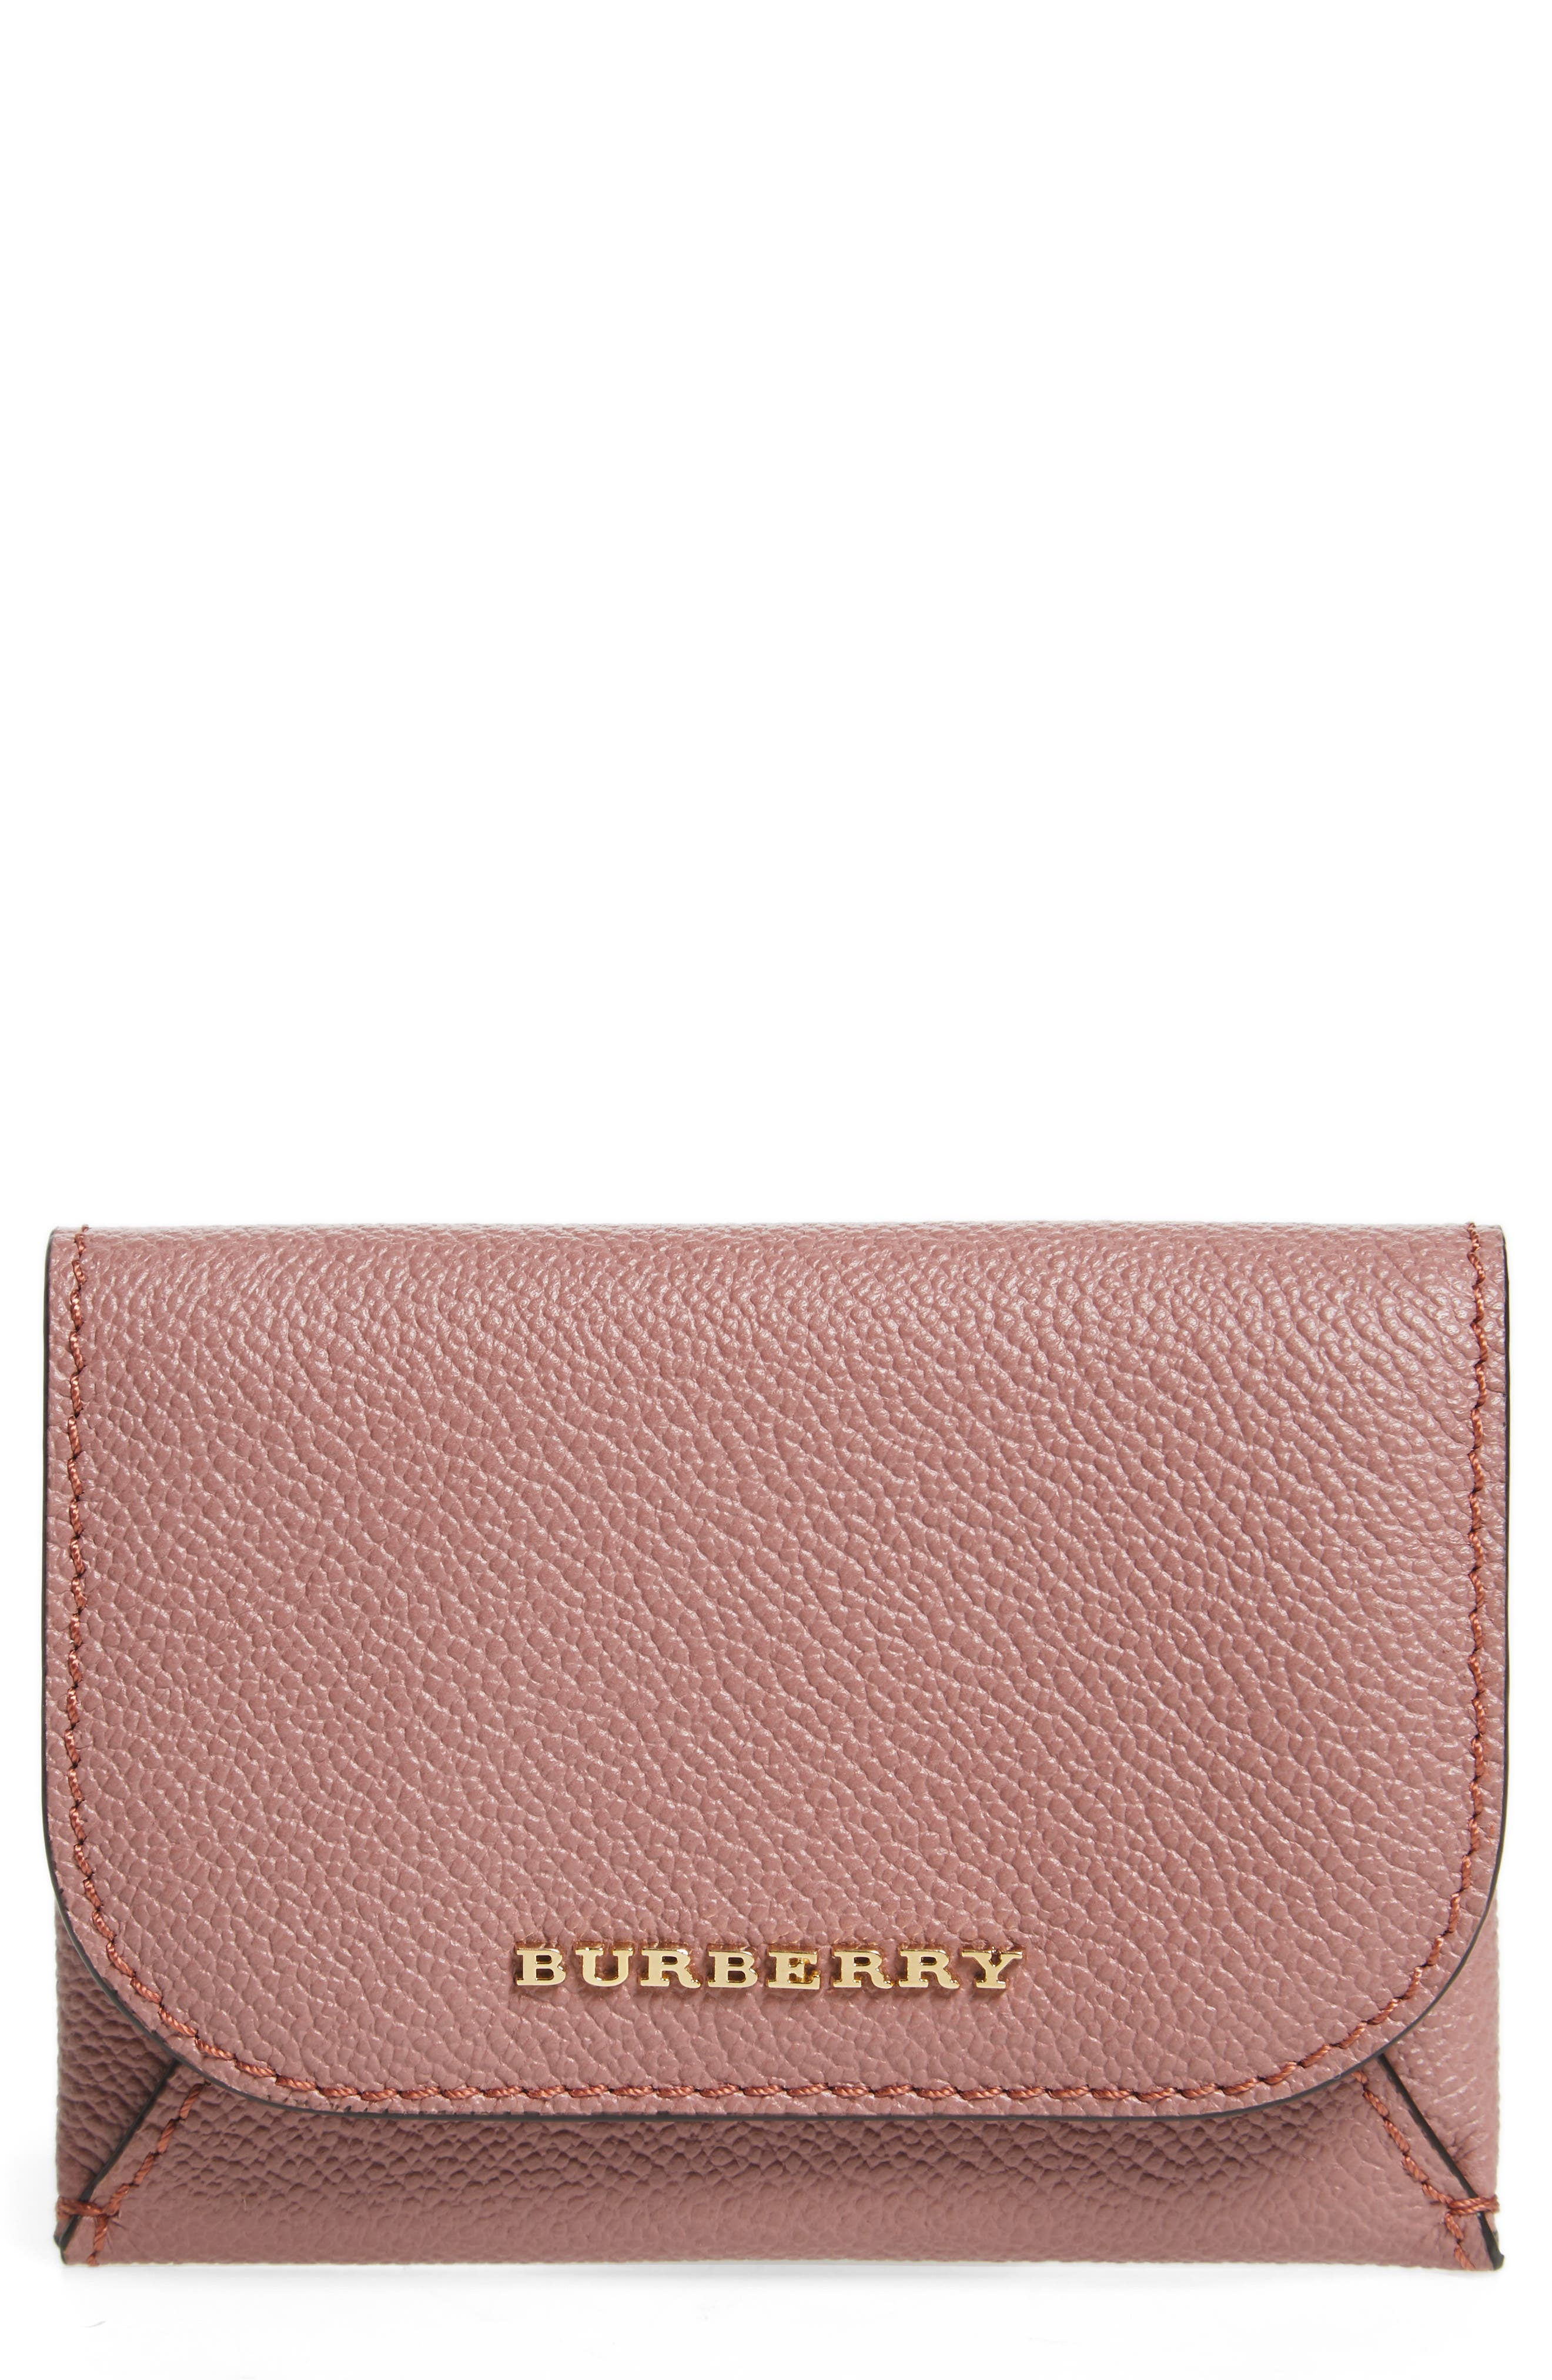 Main Image - Burberry Mayfield Leather Card Case